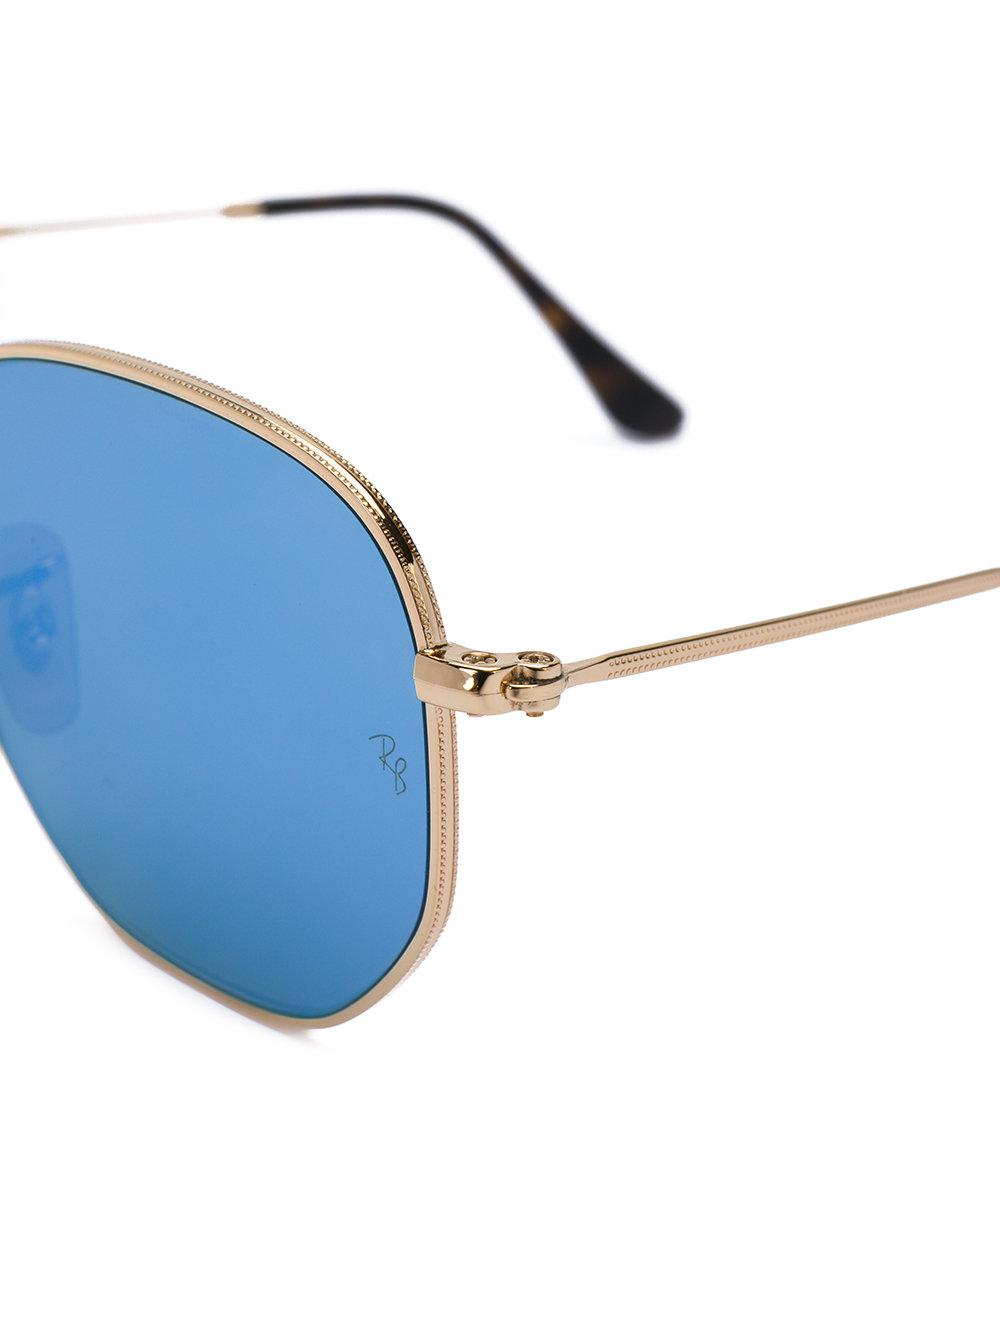 Ray-Ban Hexagonal Sunglasses in Metallic